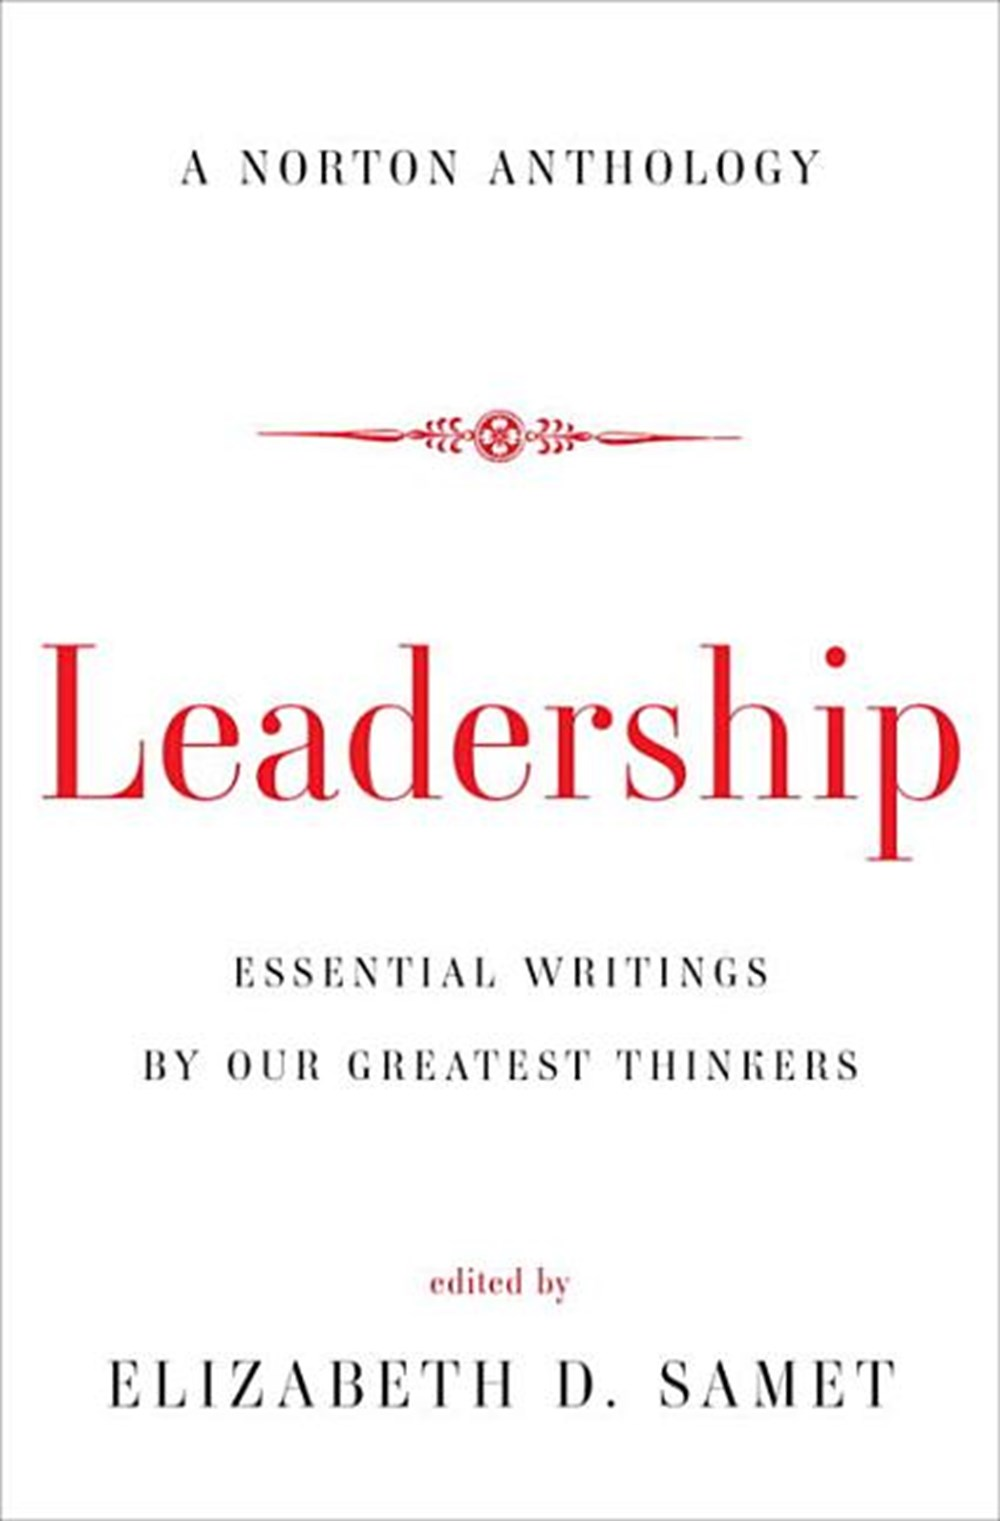 Leadership Essential Writings by Our Greatest Thinkers